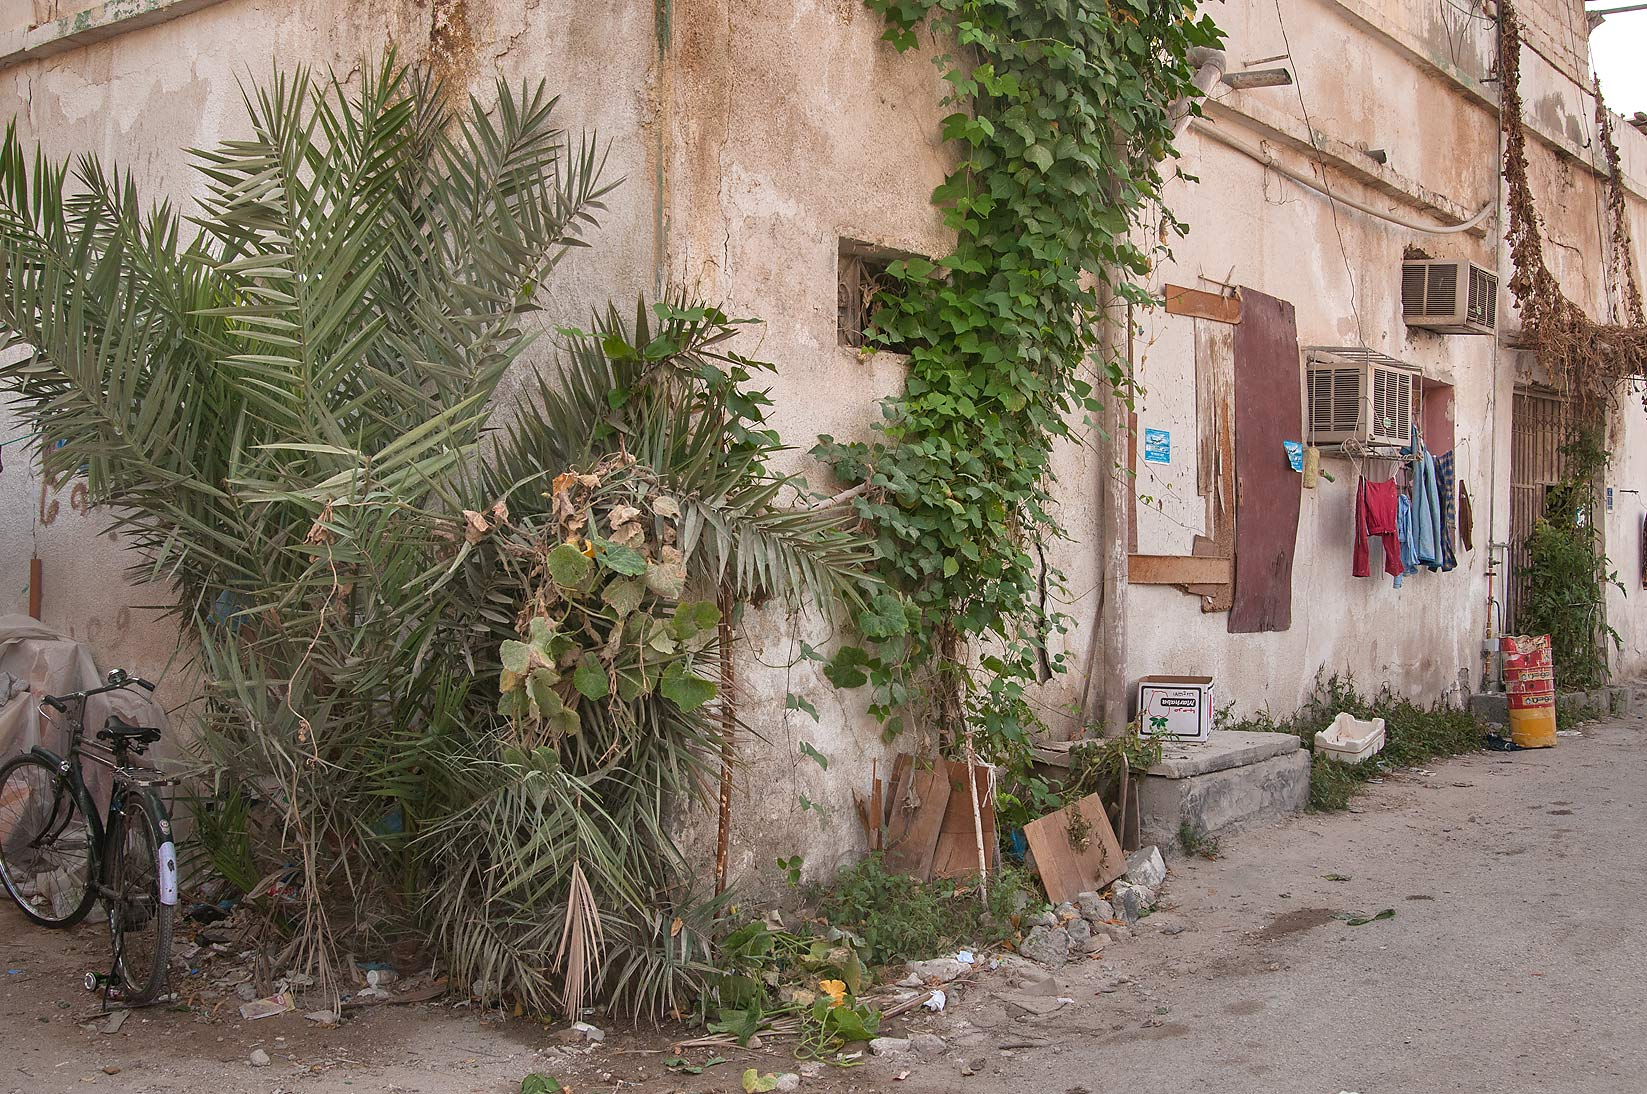 Corner of an old house at Al Maymoun St., Musheirib area. Doha, Qatar